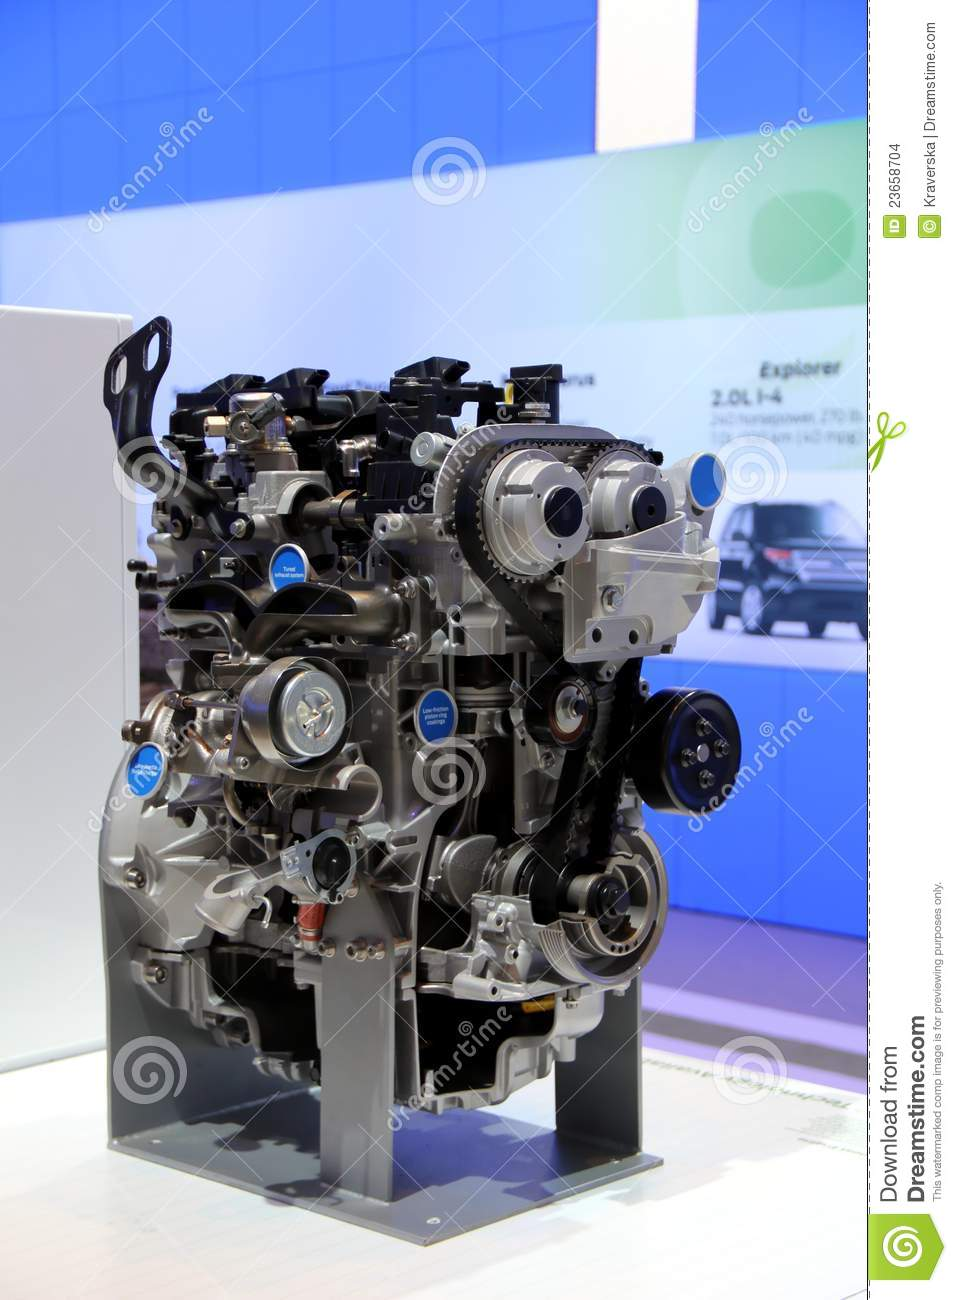 Car Engine On Display At The Exhibition Editorial Stock